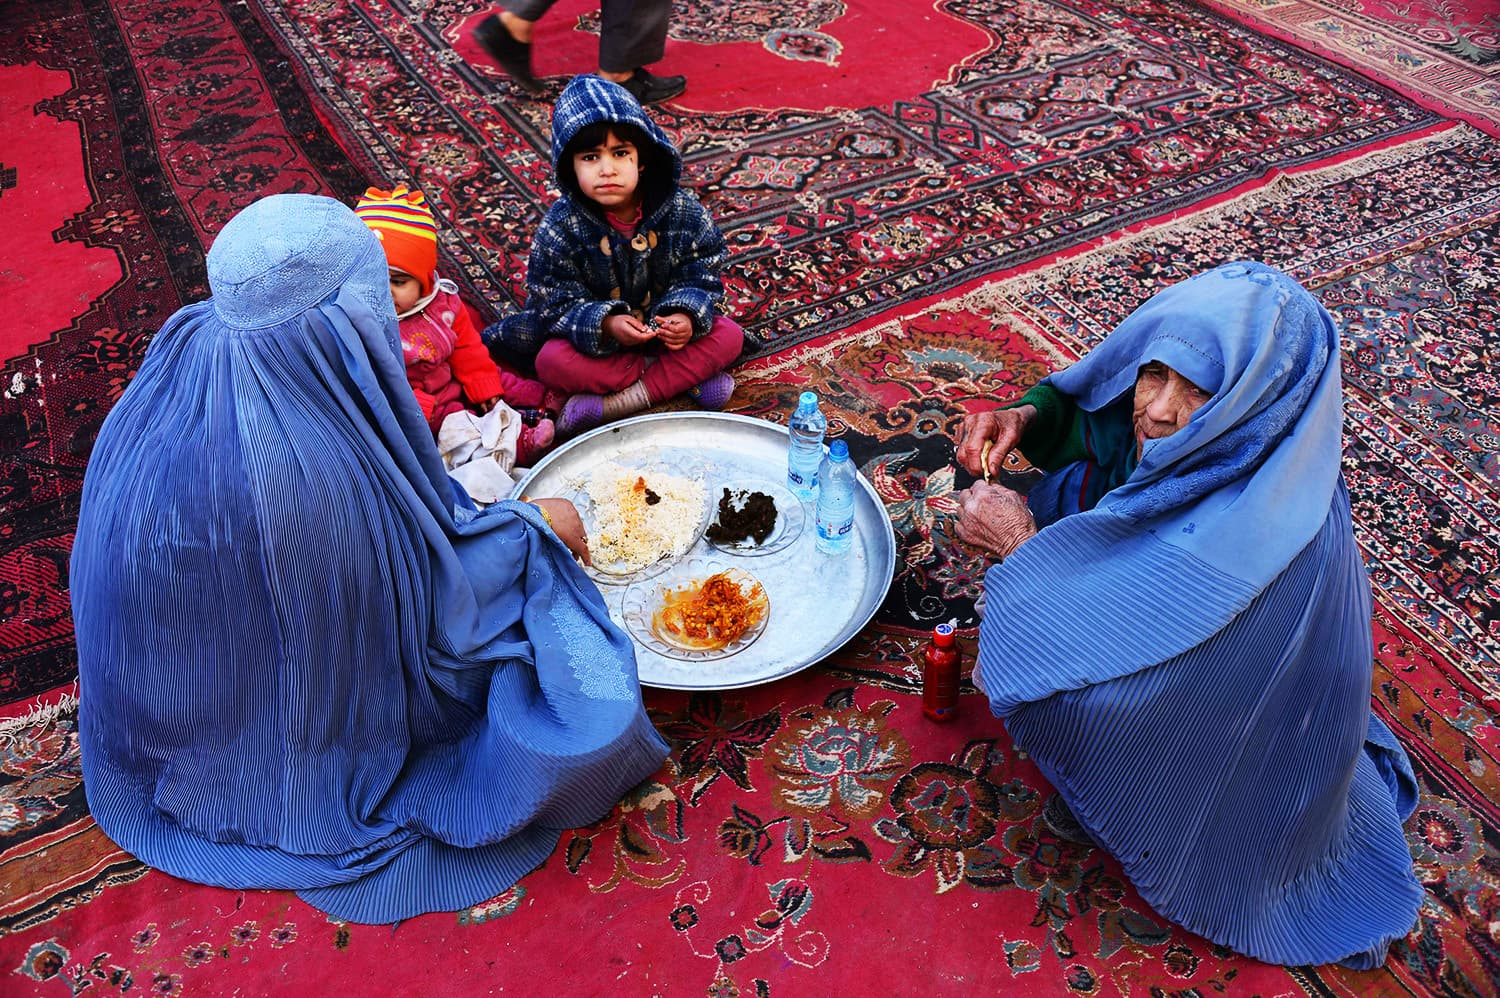 Afghan women and children eat during celebrations marking the birth anniversary of the Prophet Muhammad (PBUH).—AFP